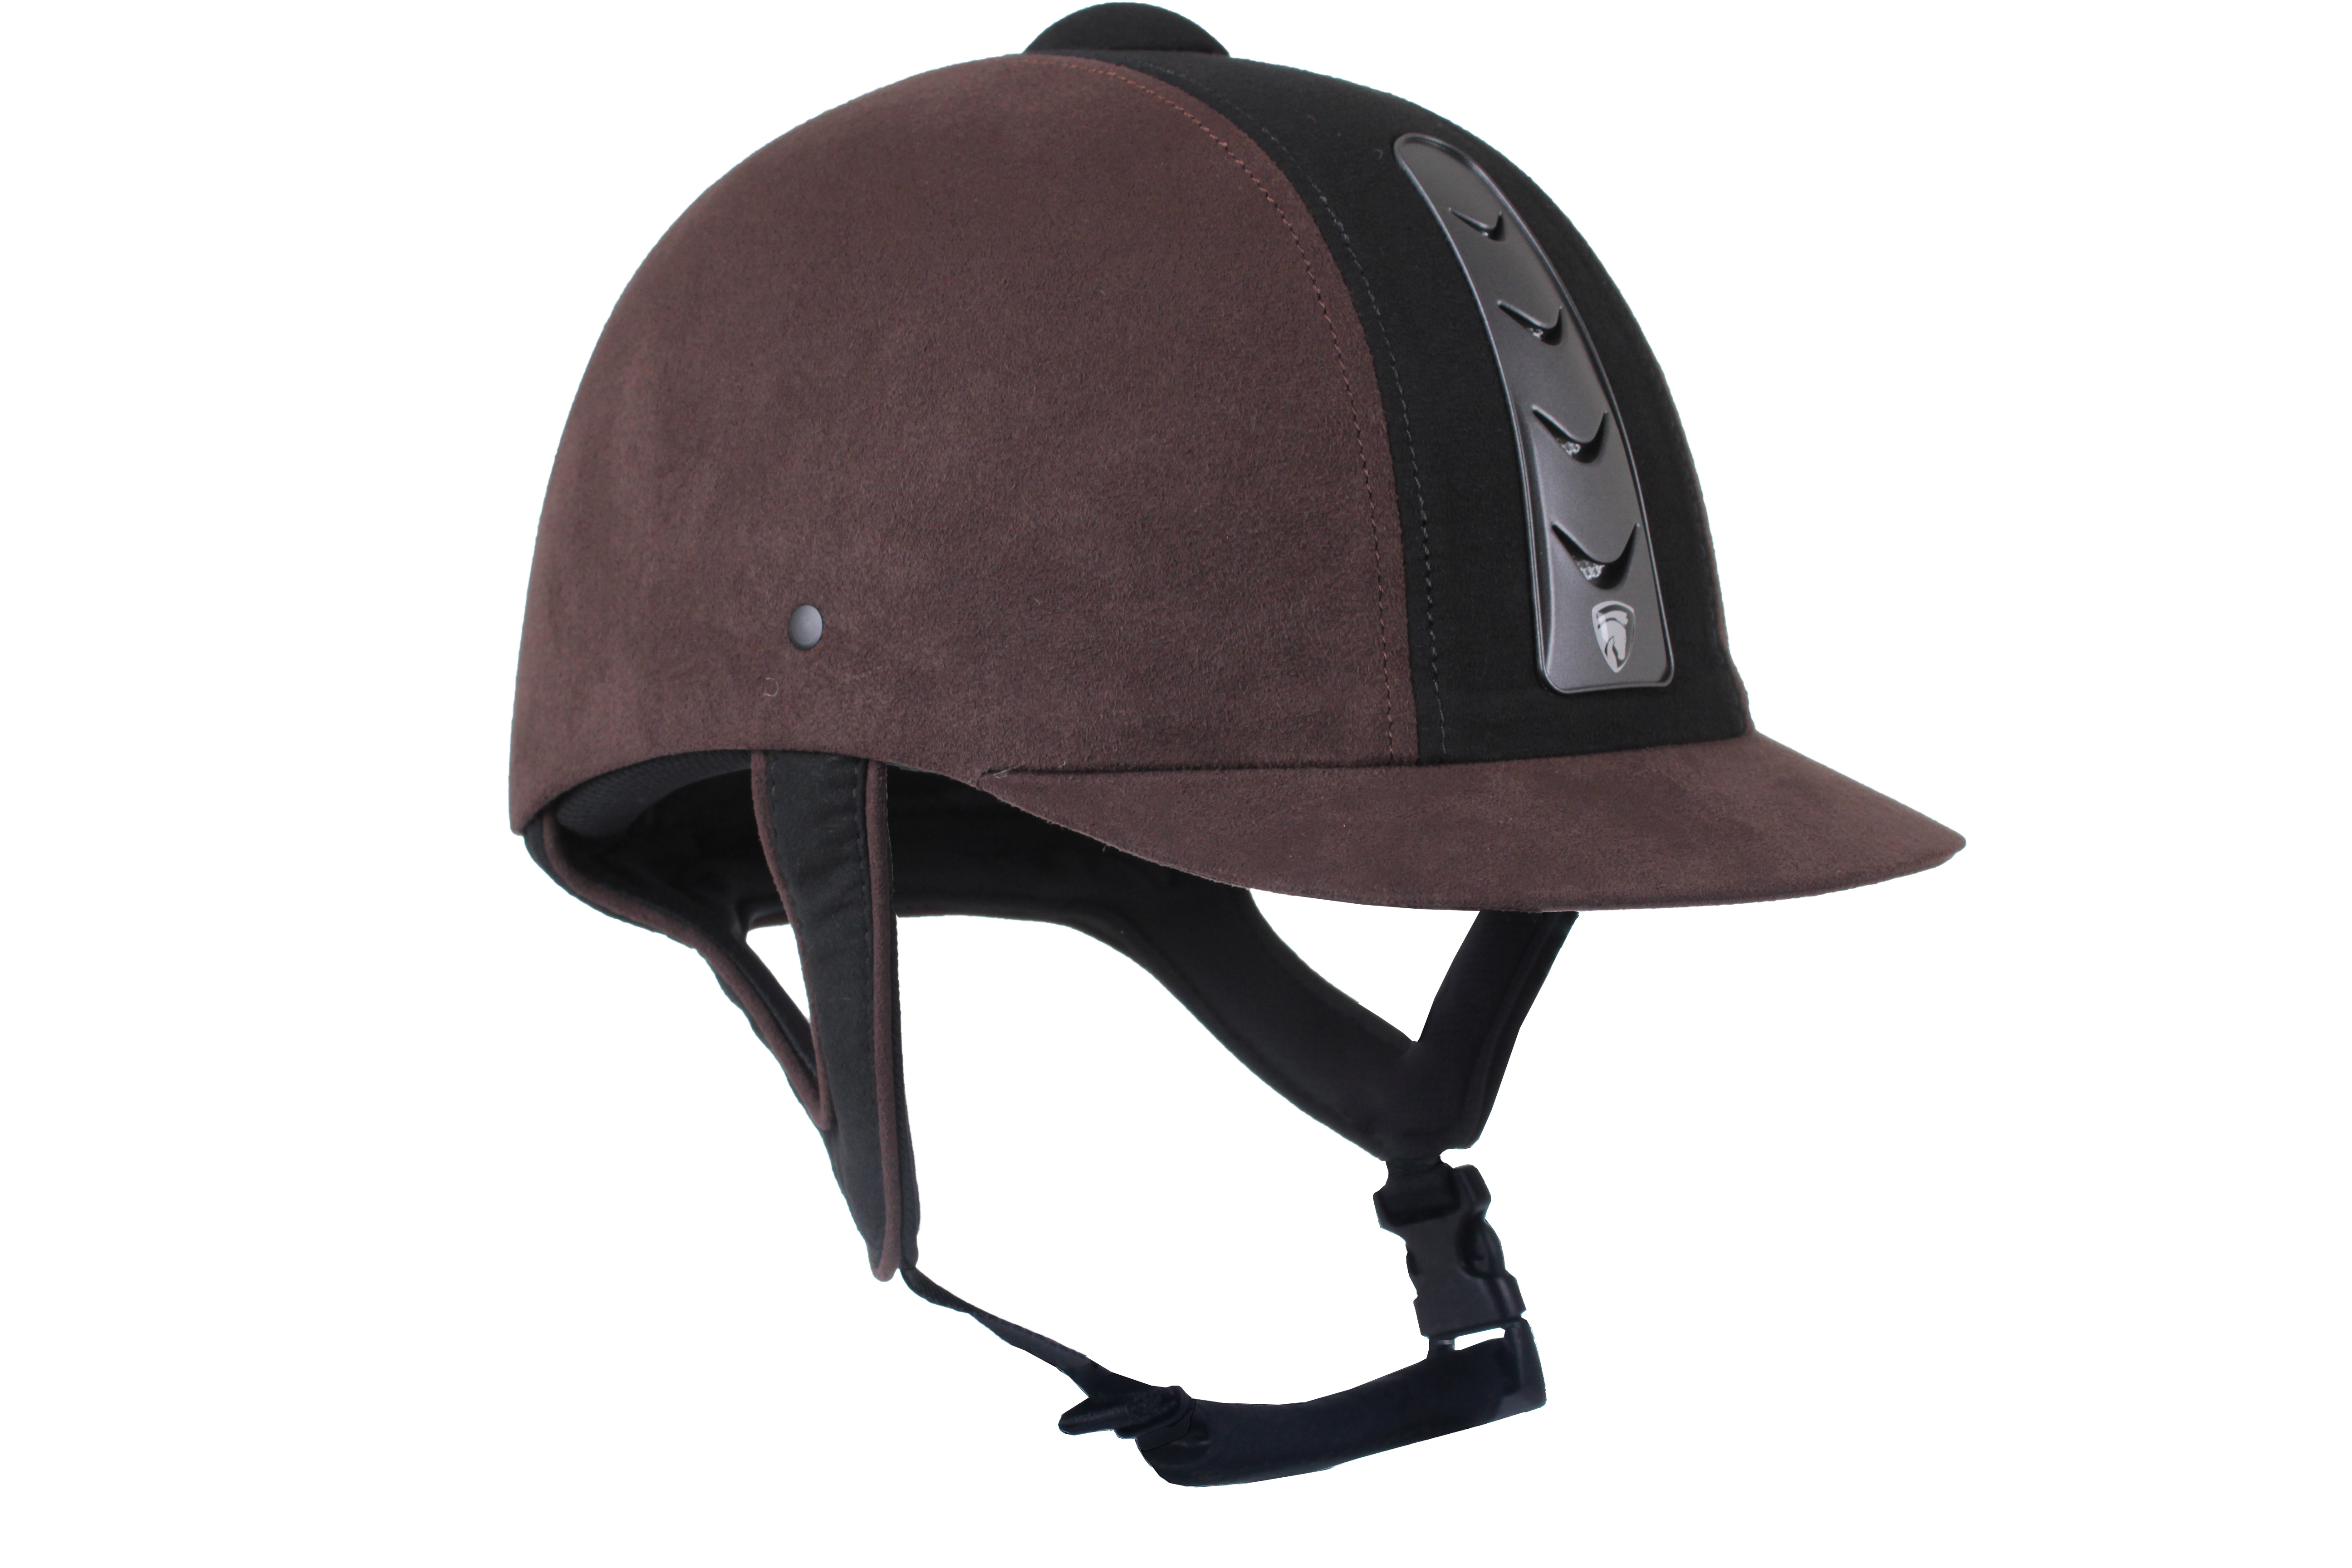 Horka Hawk Riding Helmet Leather - Brown - 58